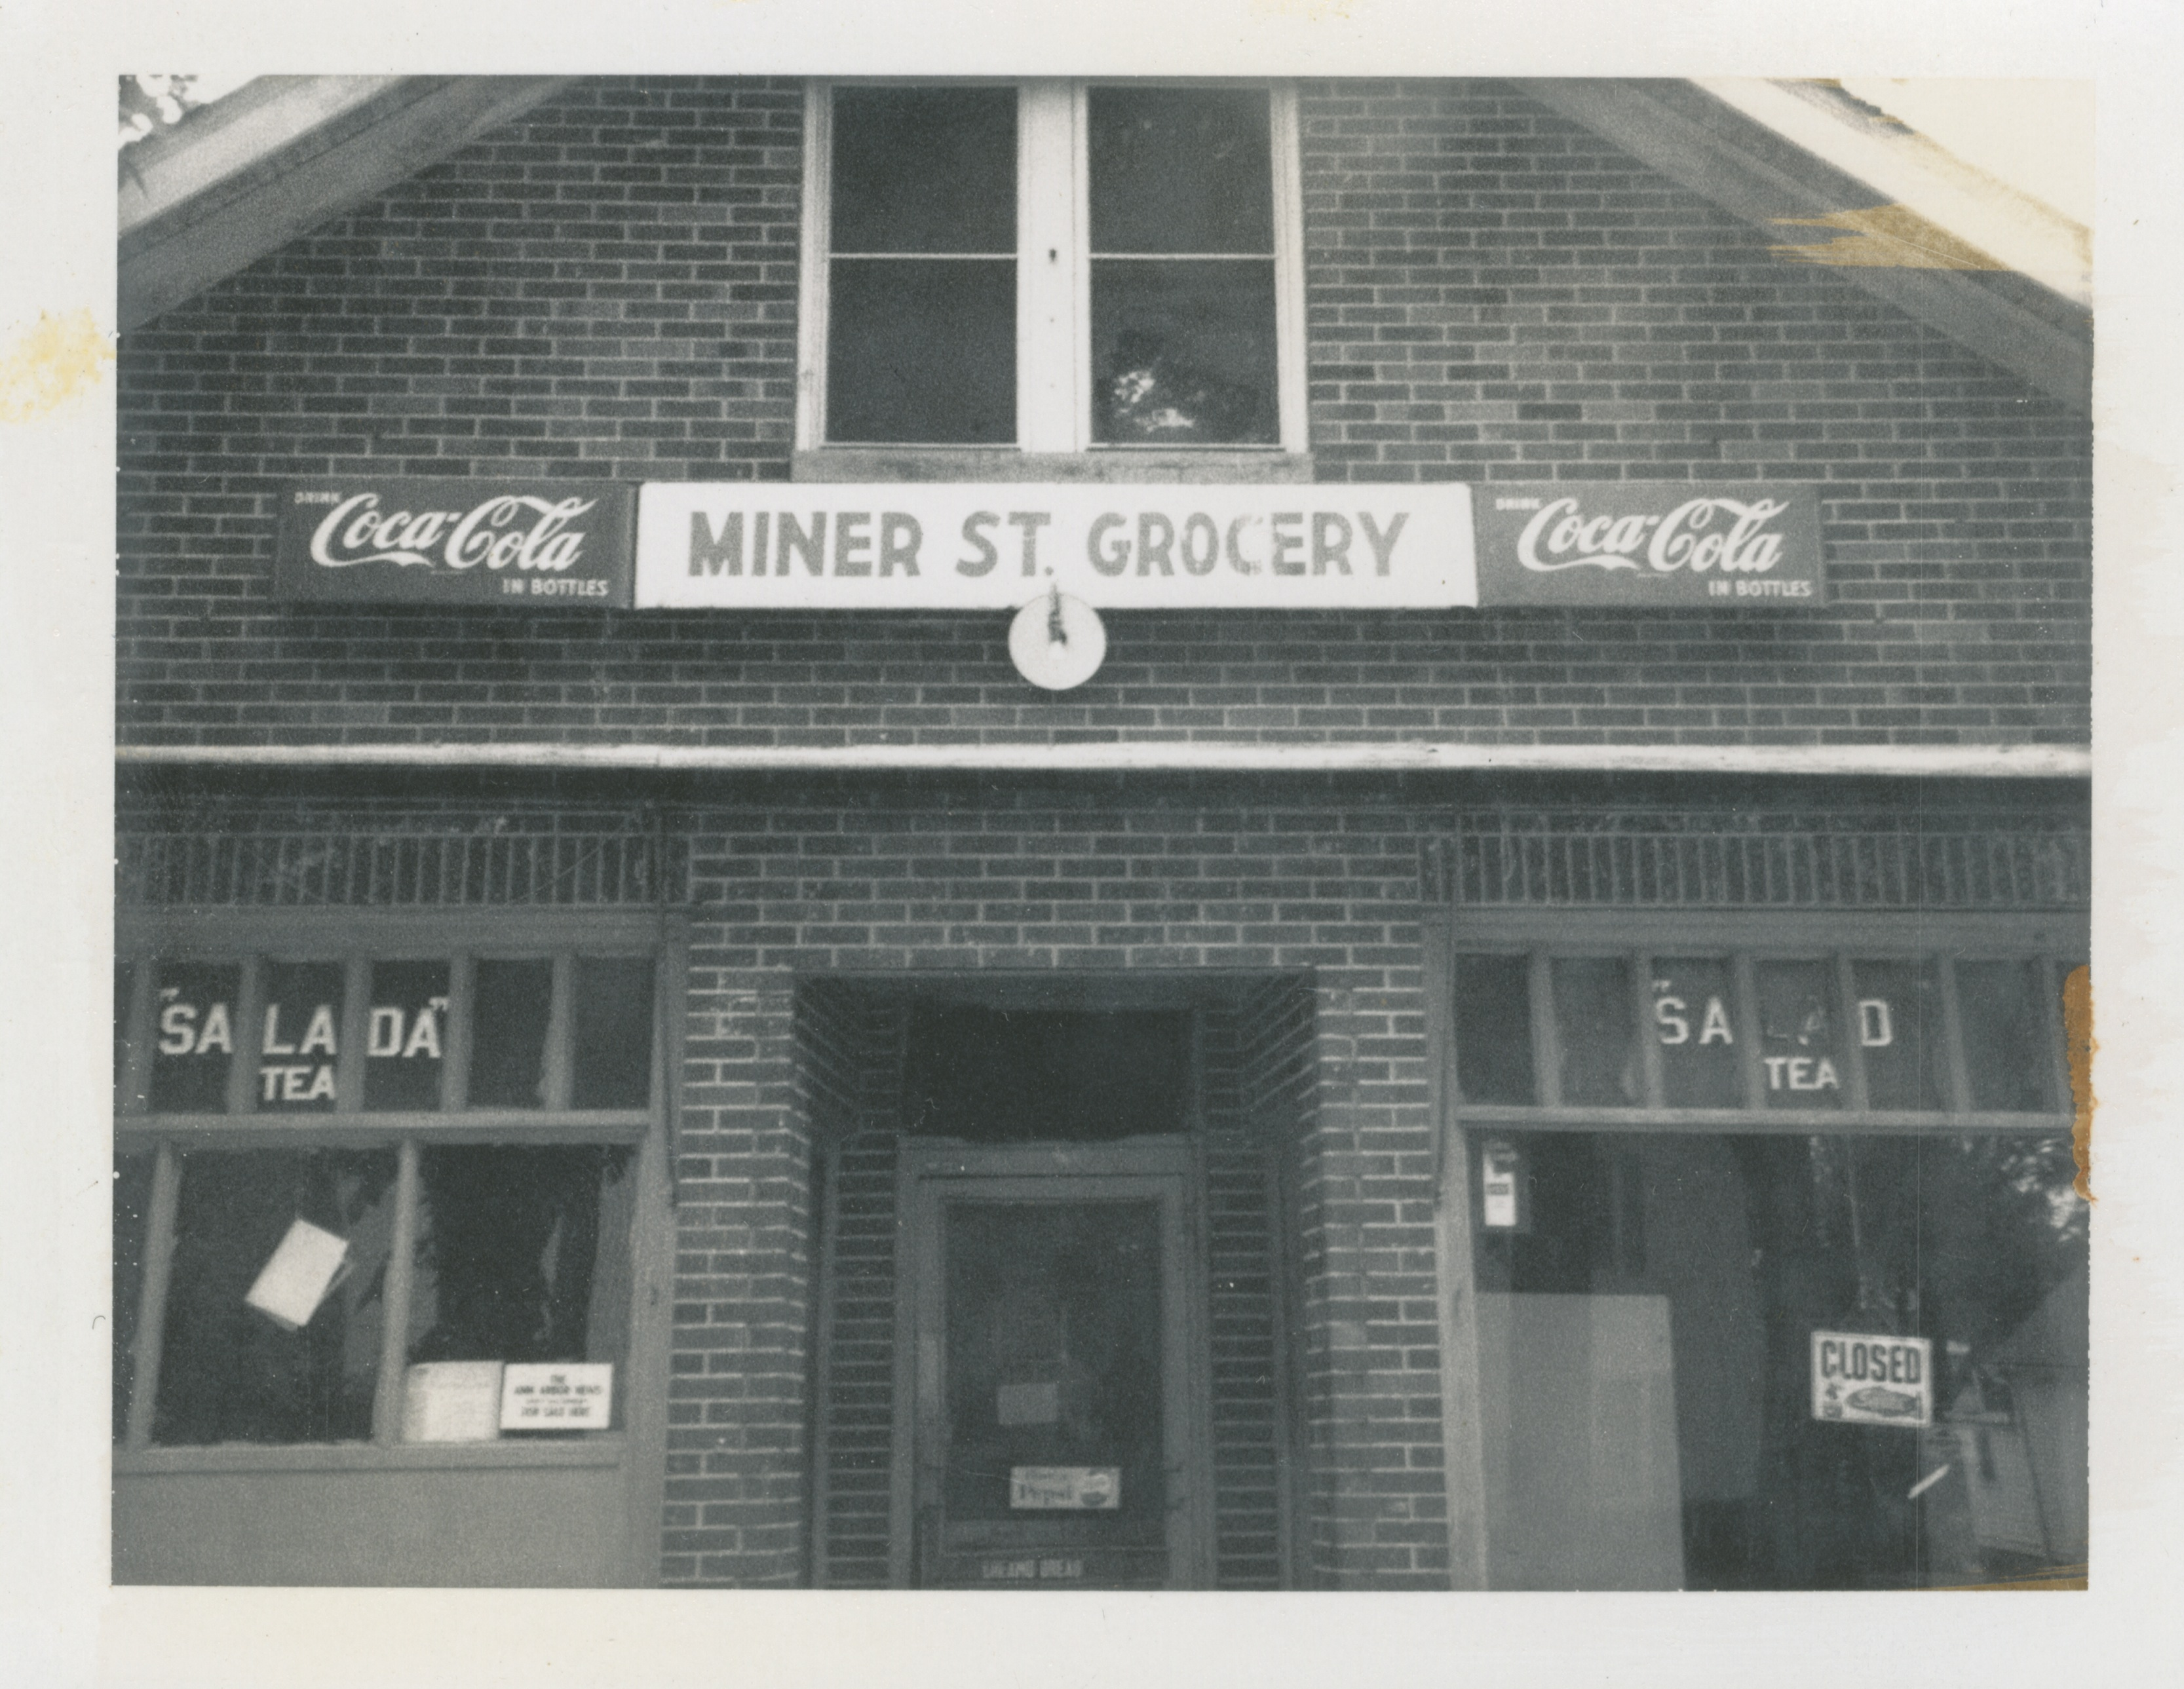 Miner Street Grocery, 1972 image